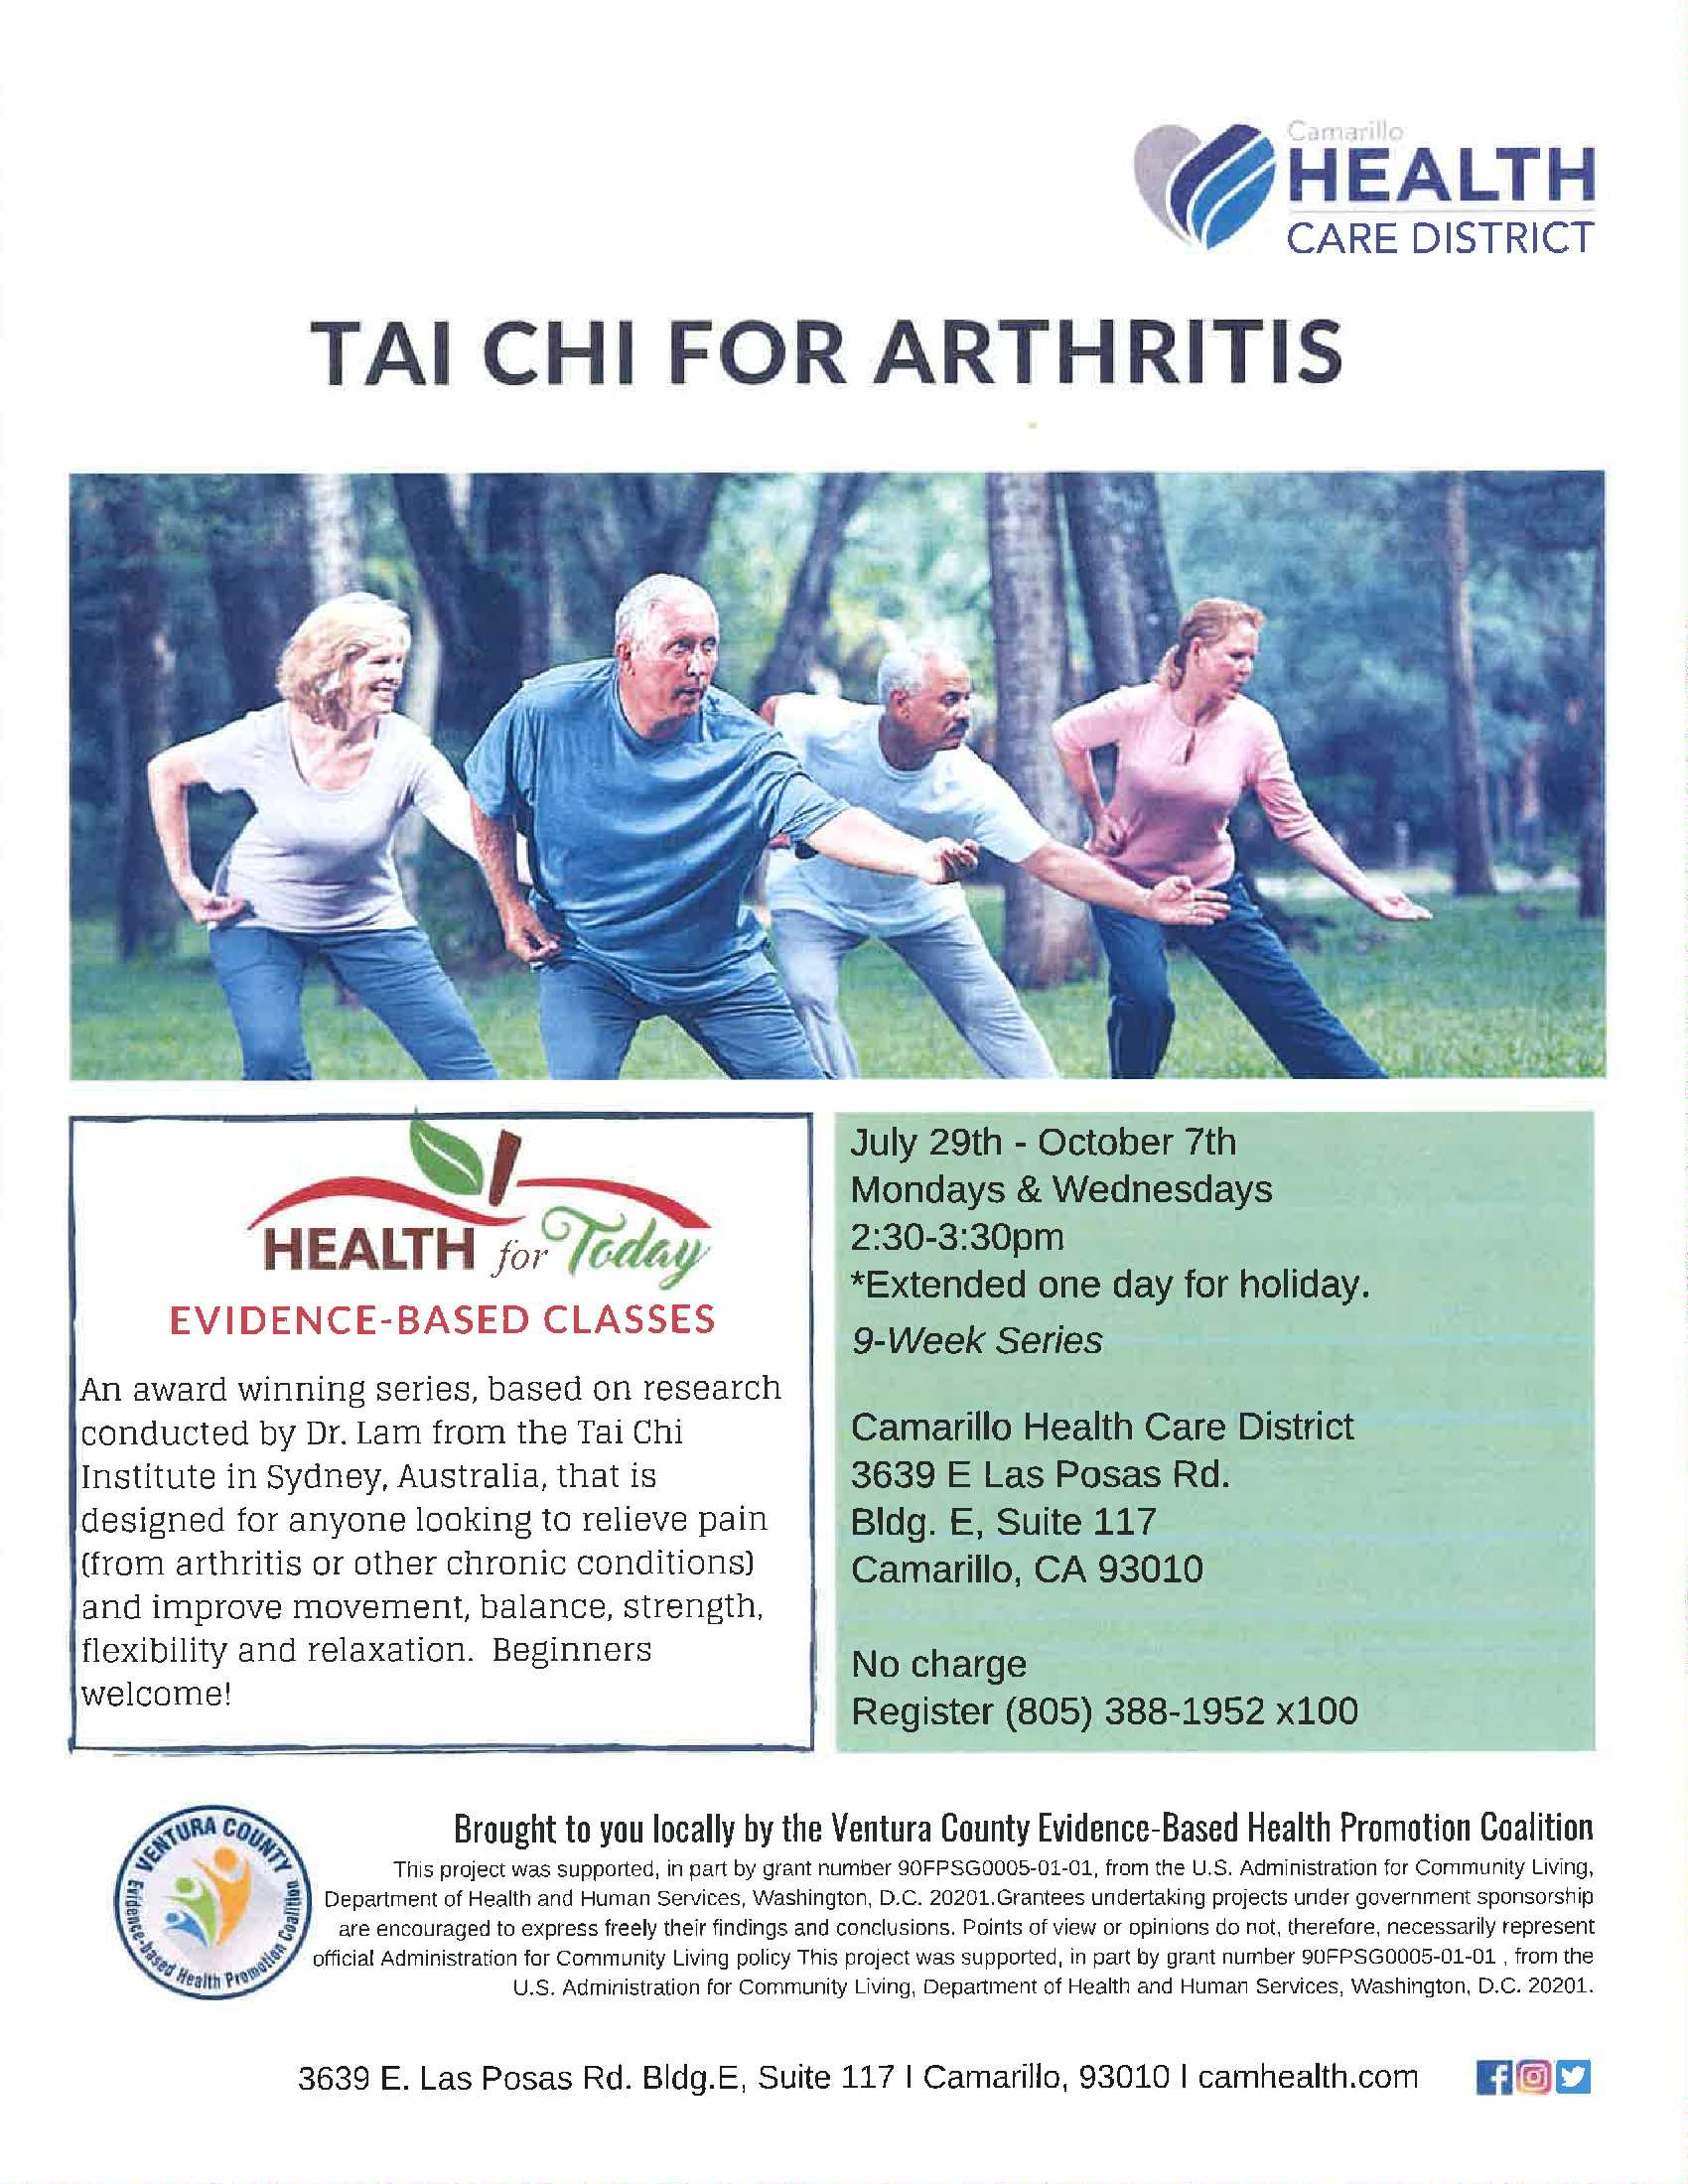 July 29 O October 7 Tai Chi For Arthritis Camarillo Health Care District